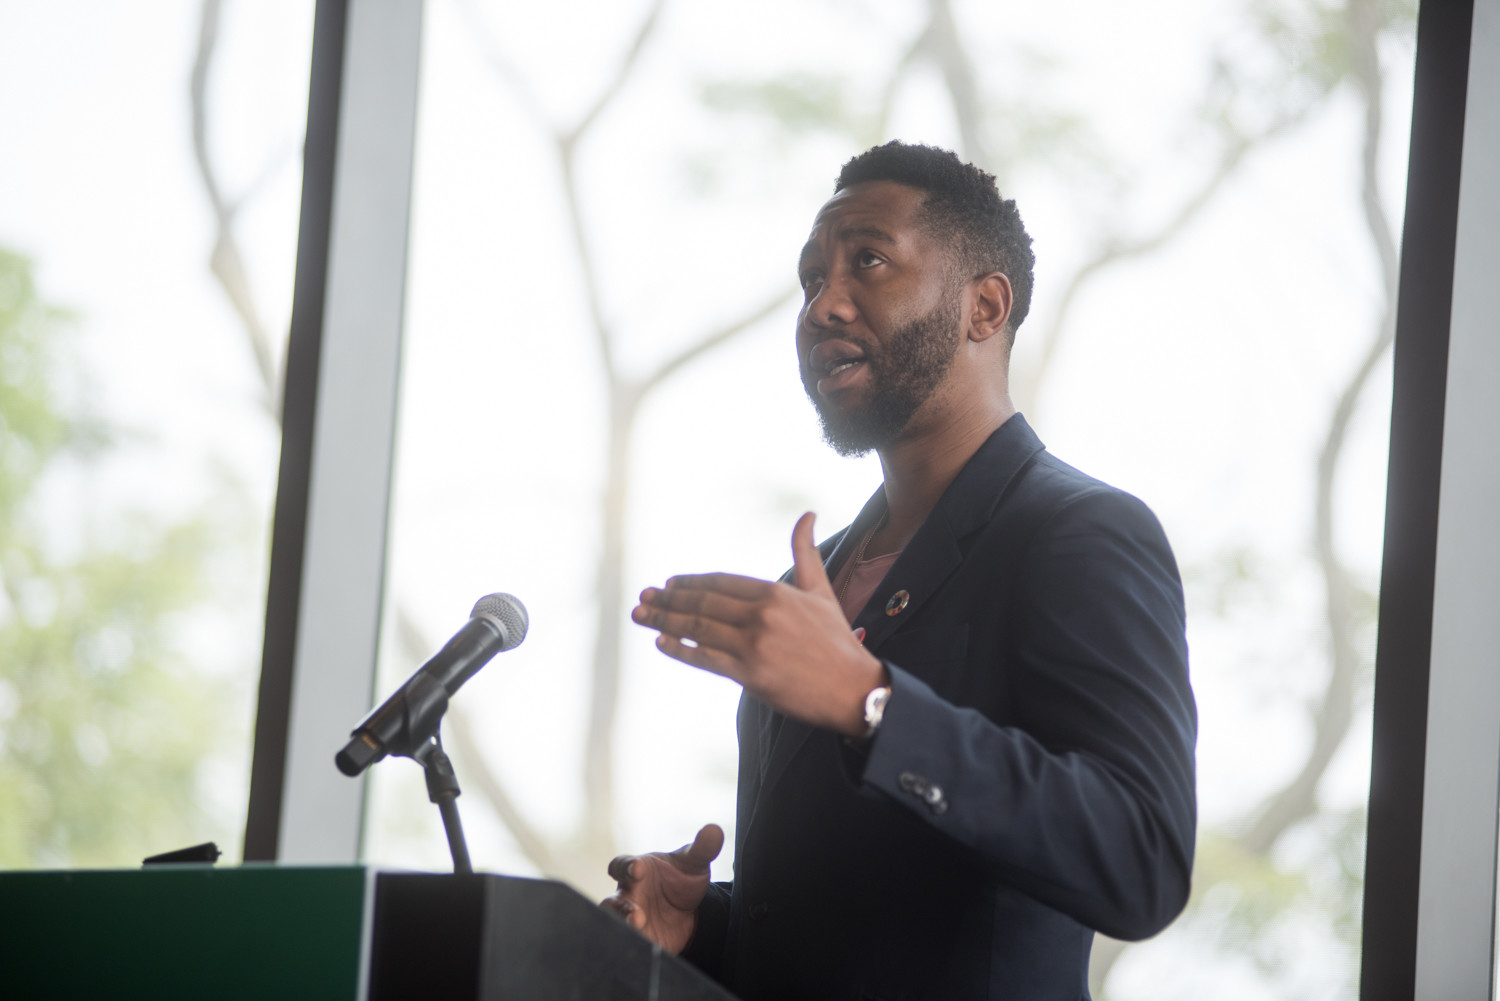 Ndaba Mandela, the grandson of Nelson Mandela, speaks about his experiences at Manhattan College.